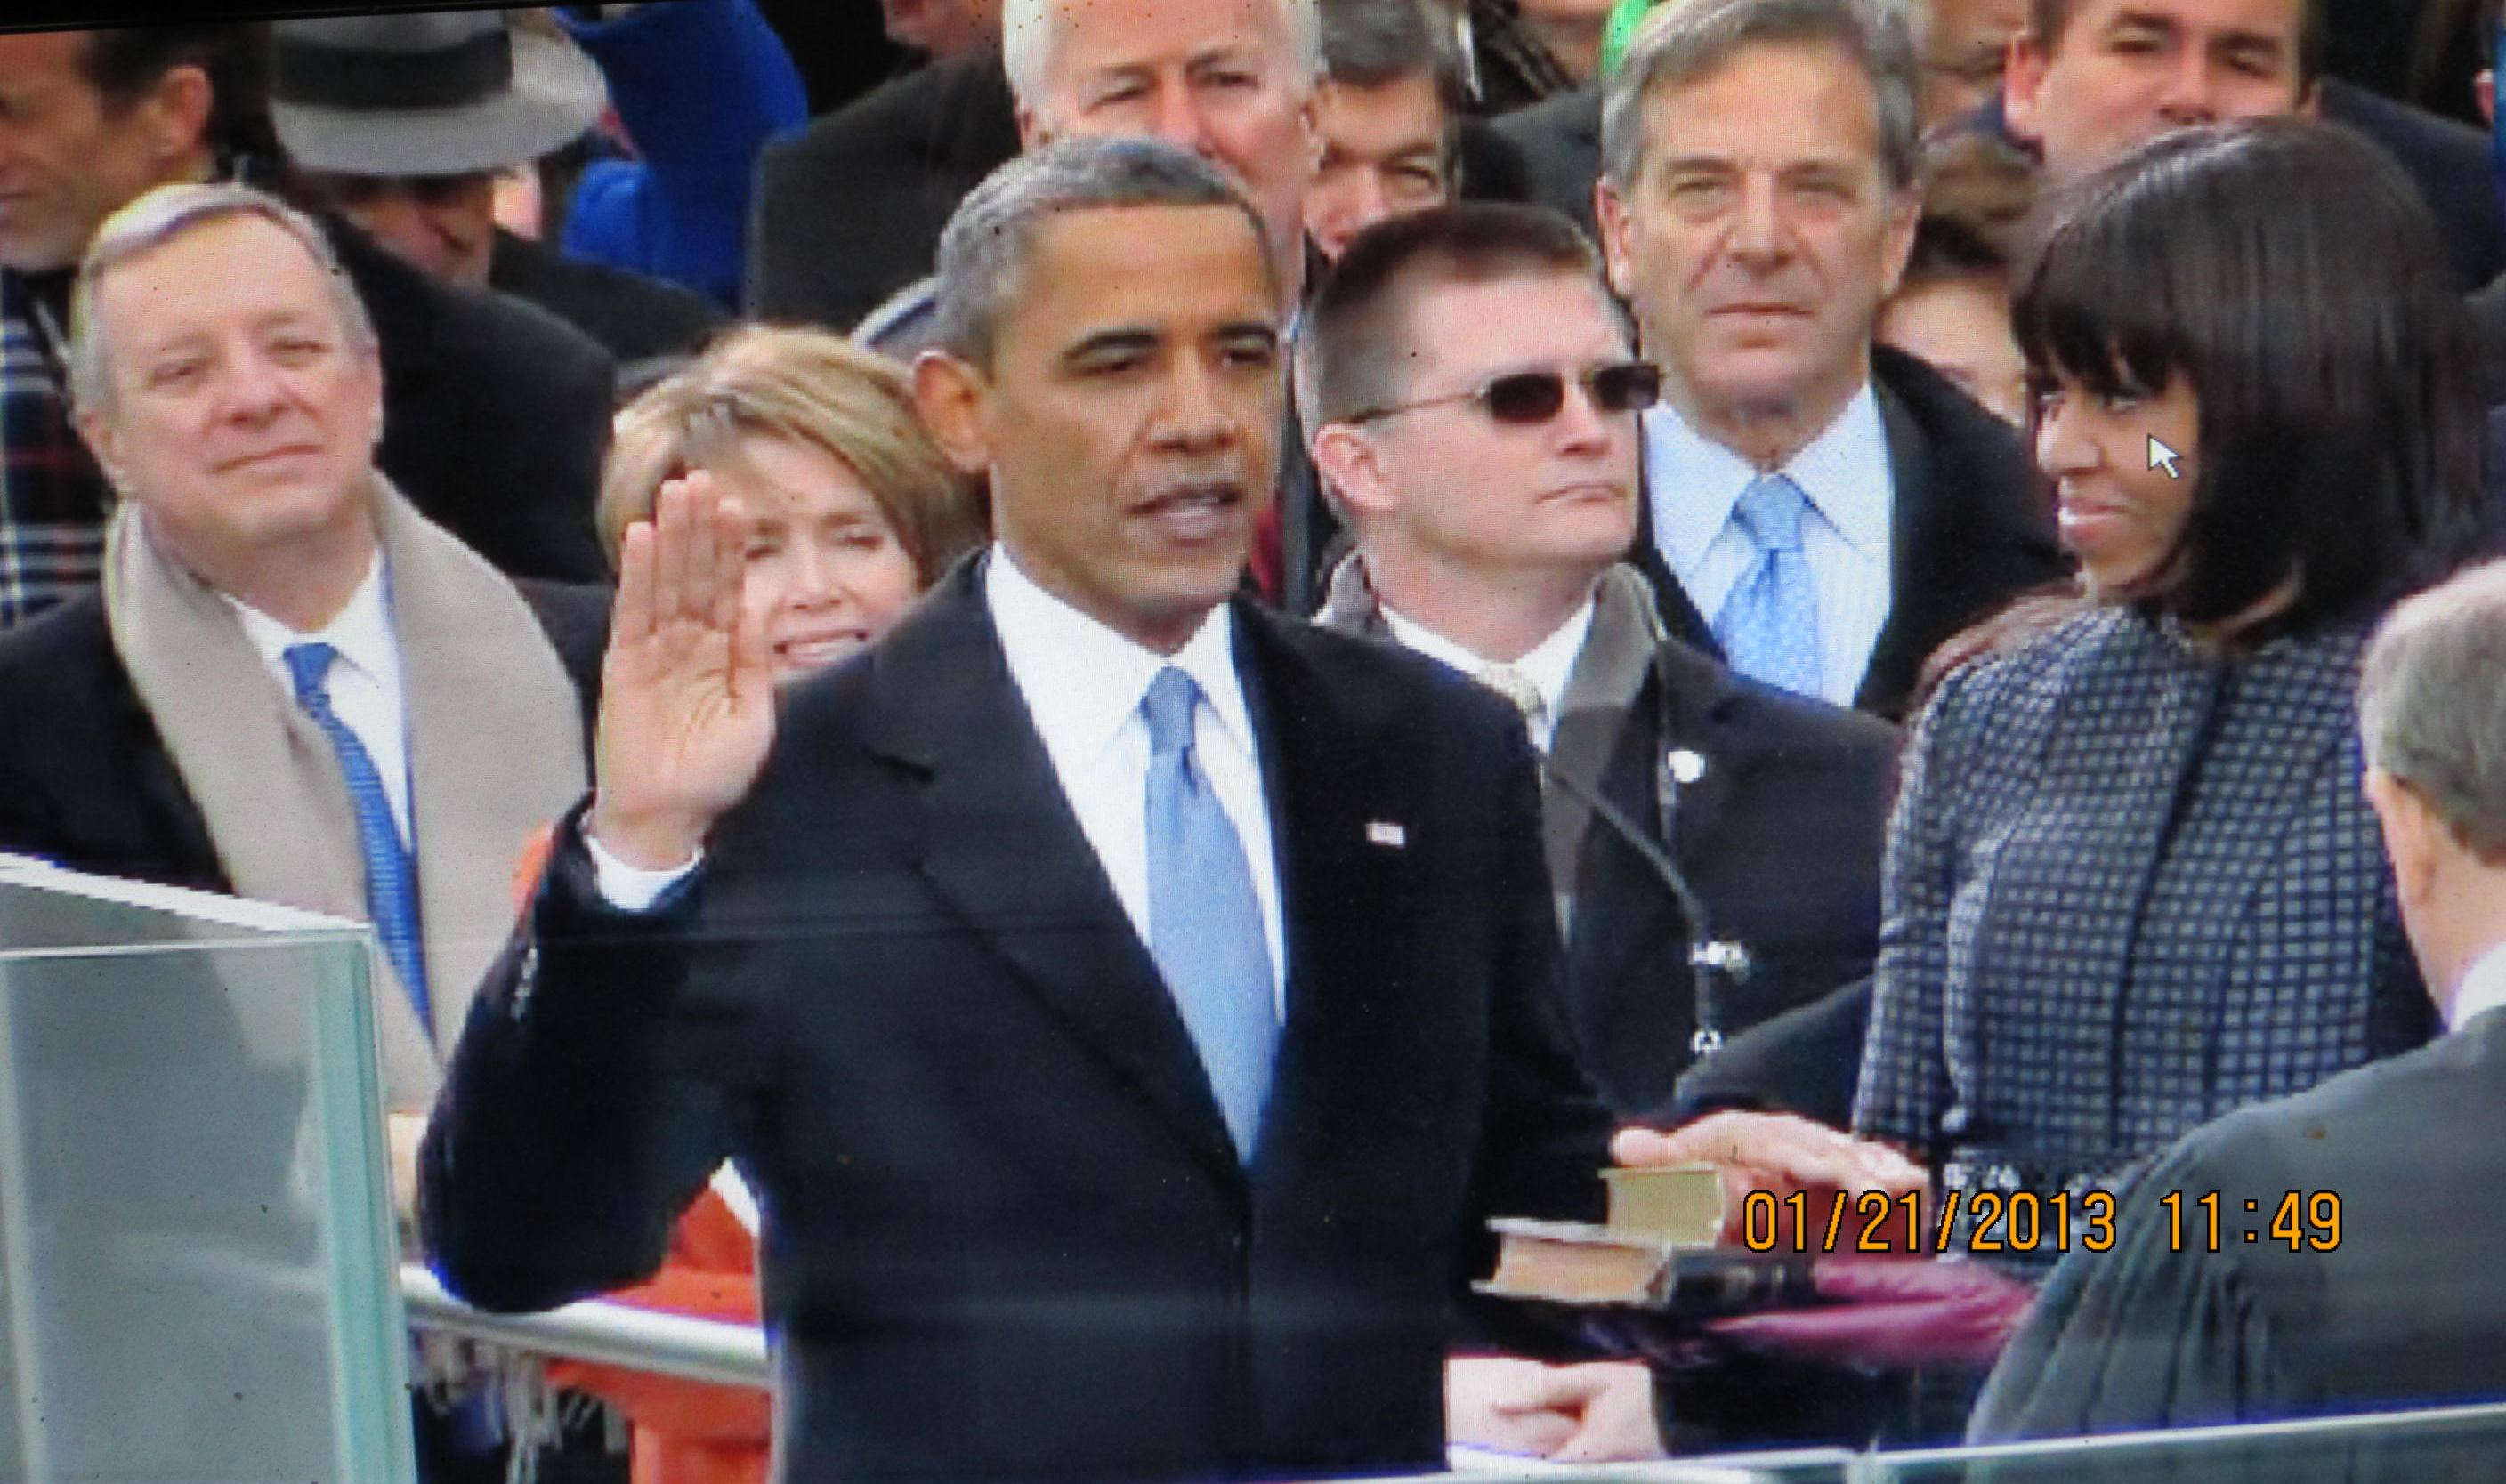 http://hillnholler.files.wordpress.com/2013/01/oath-of-office-barack-obama.jpg